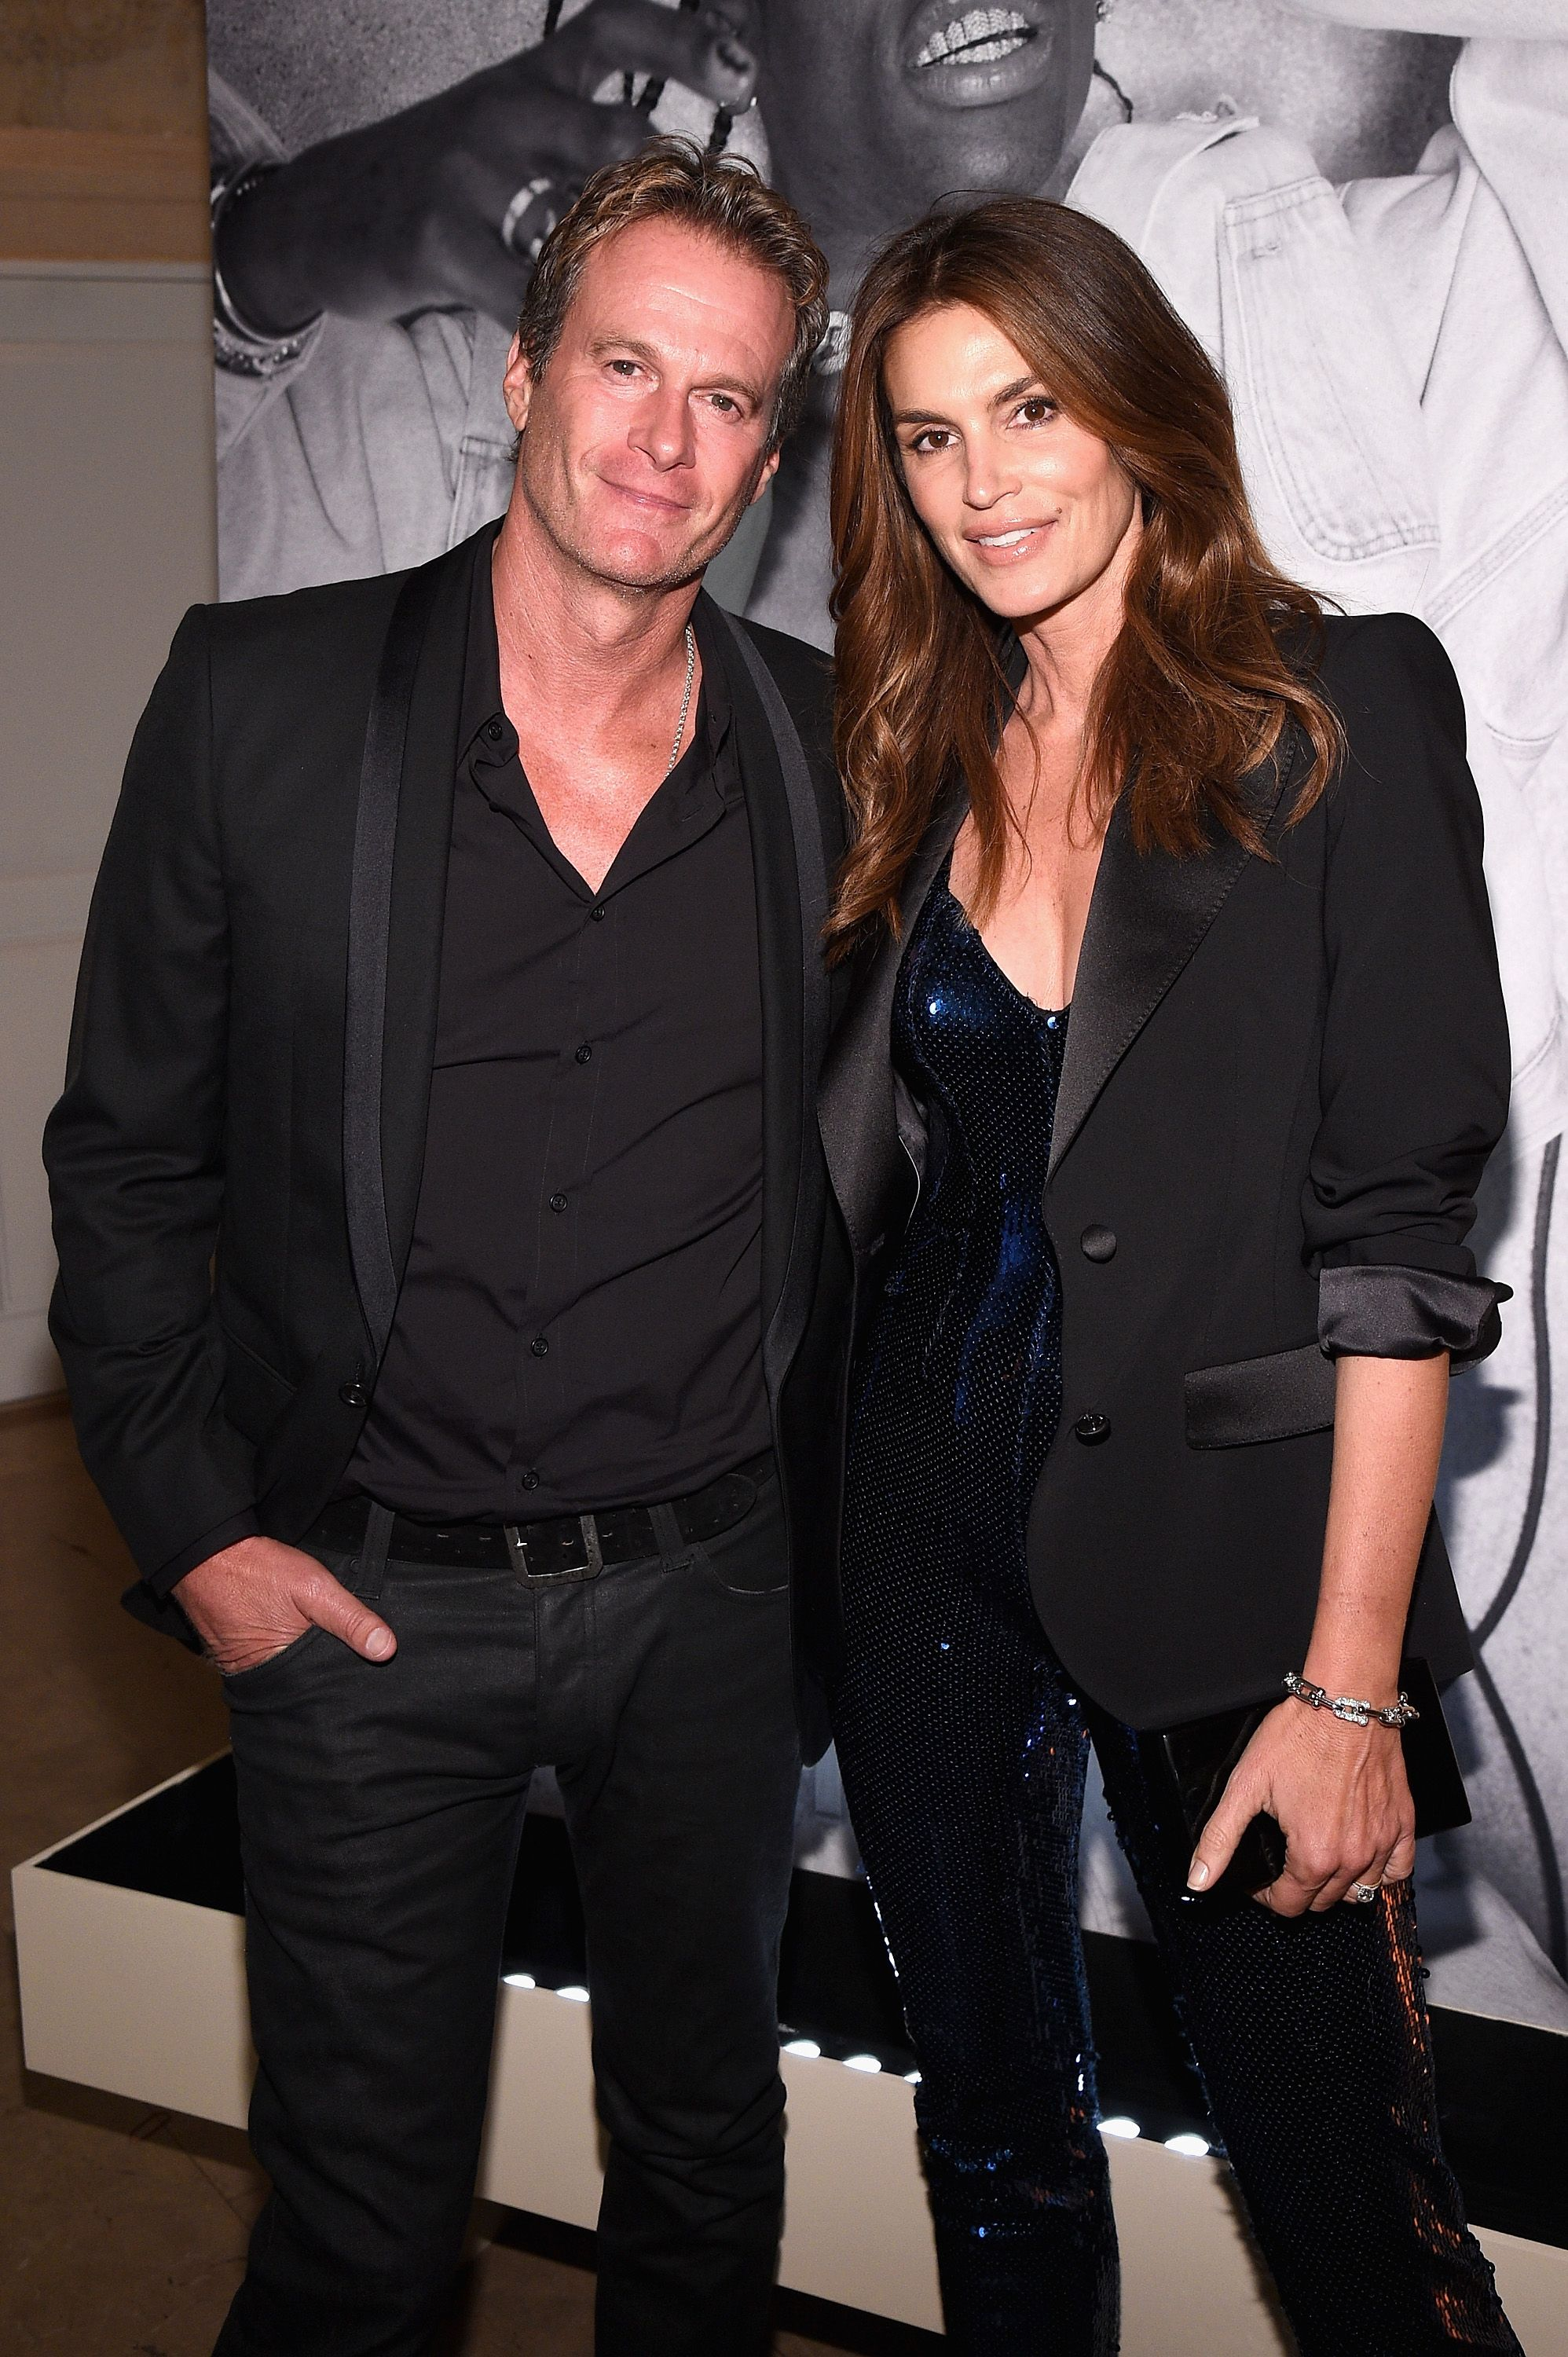 Cindy Crawford and Rande Gerber The supermodel has her agent, Michael Gruber, to thank for connecting her with her husband, Rande Gerber. When Gruber was getting married, he suggested that Crawford and Gerber be each other's dates to his big day.